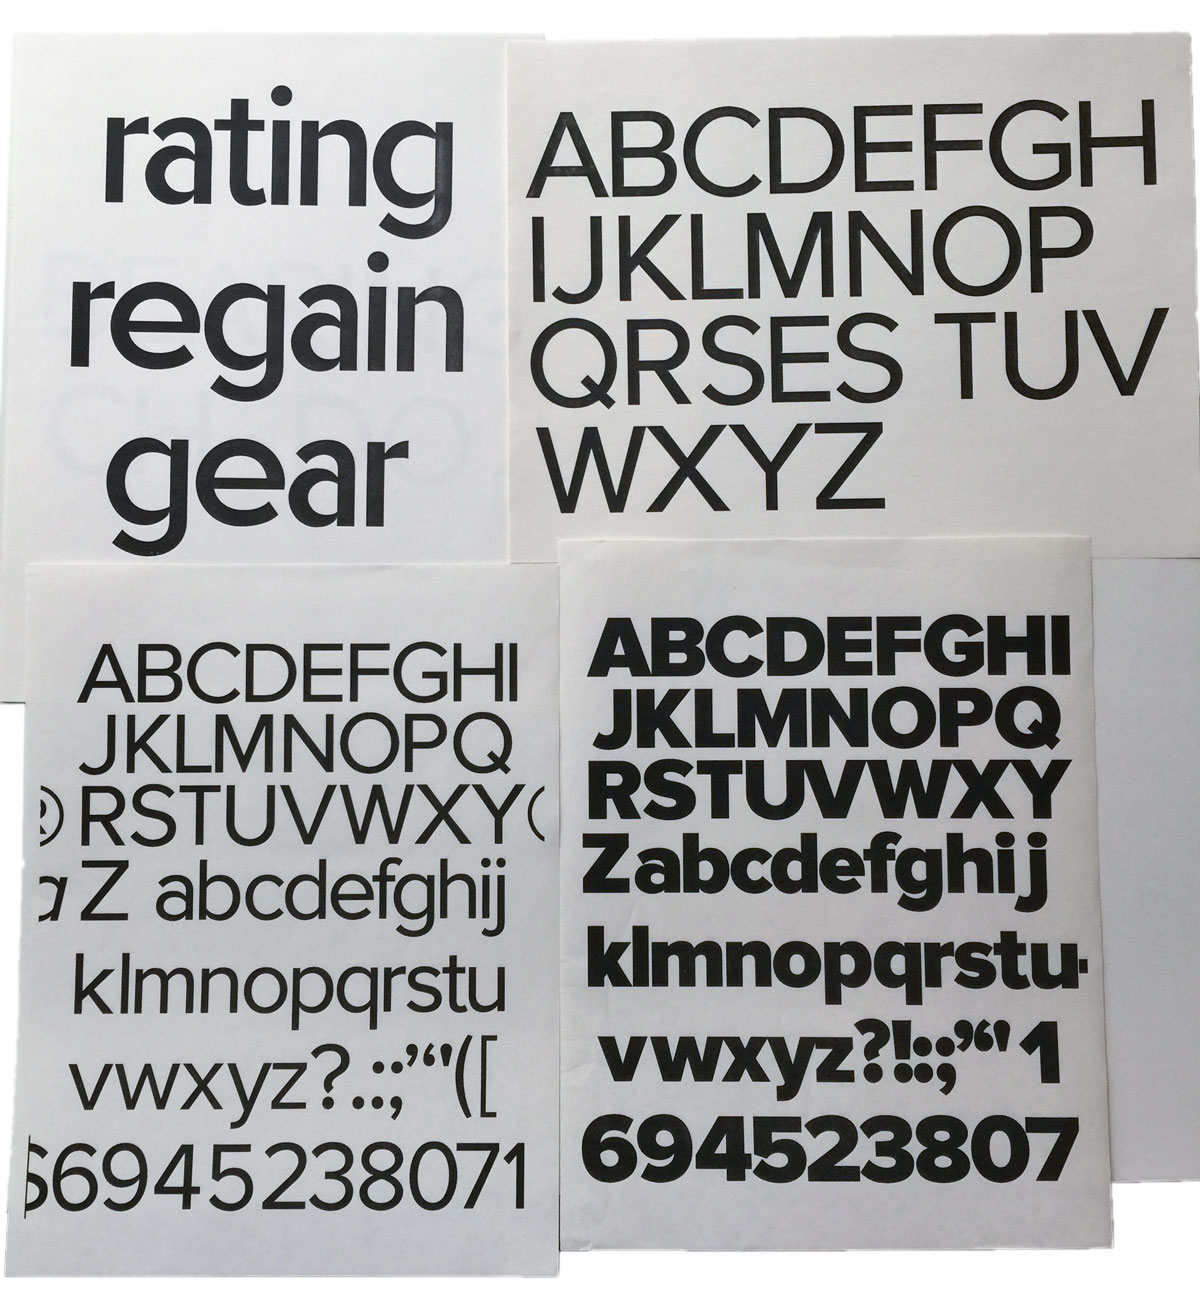 Zanzibar (later renamed Proxima Sans) in its digital infancy and Proxima Nova Regular toda (typefaces designed by Mark Simonson).